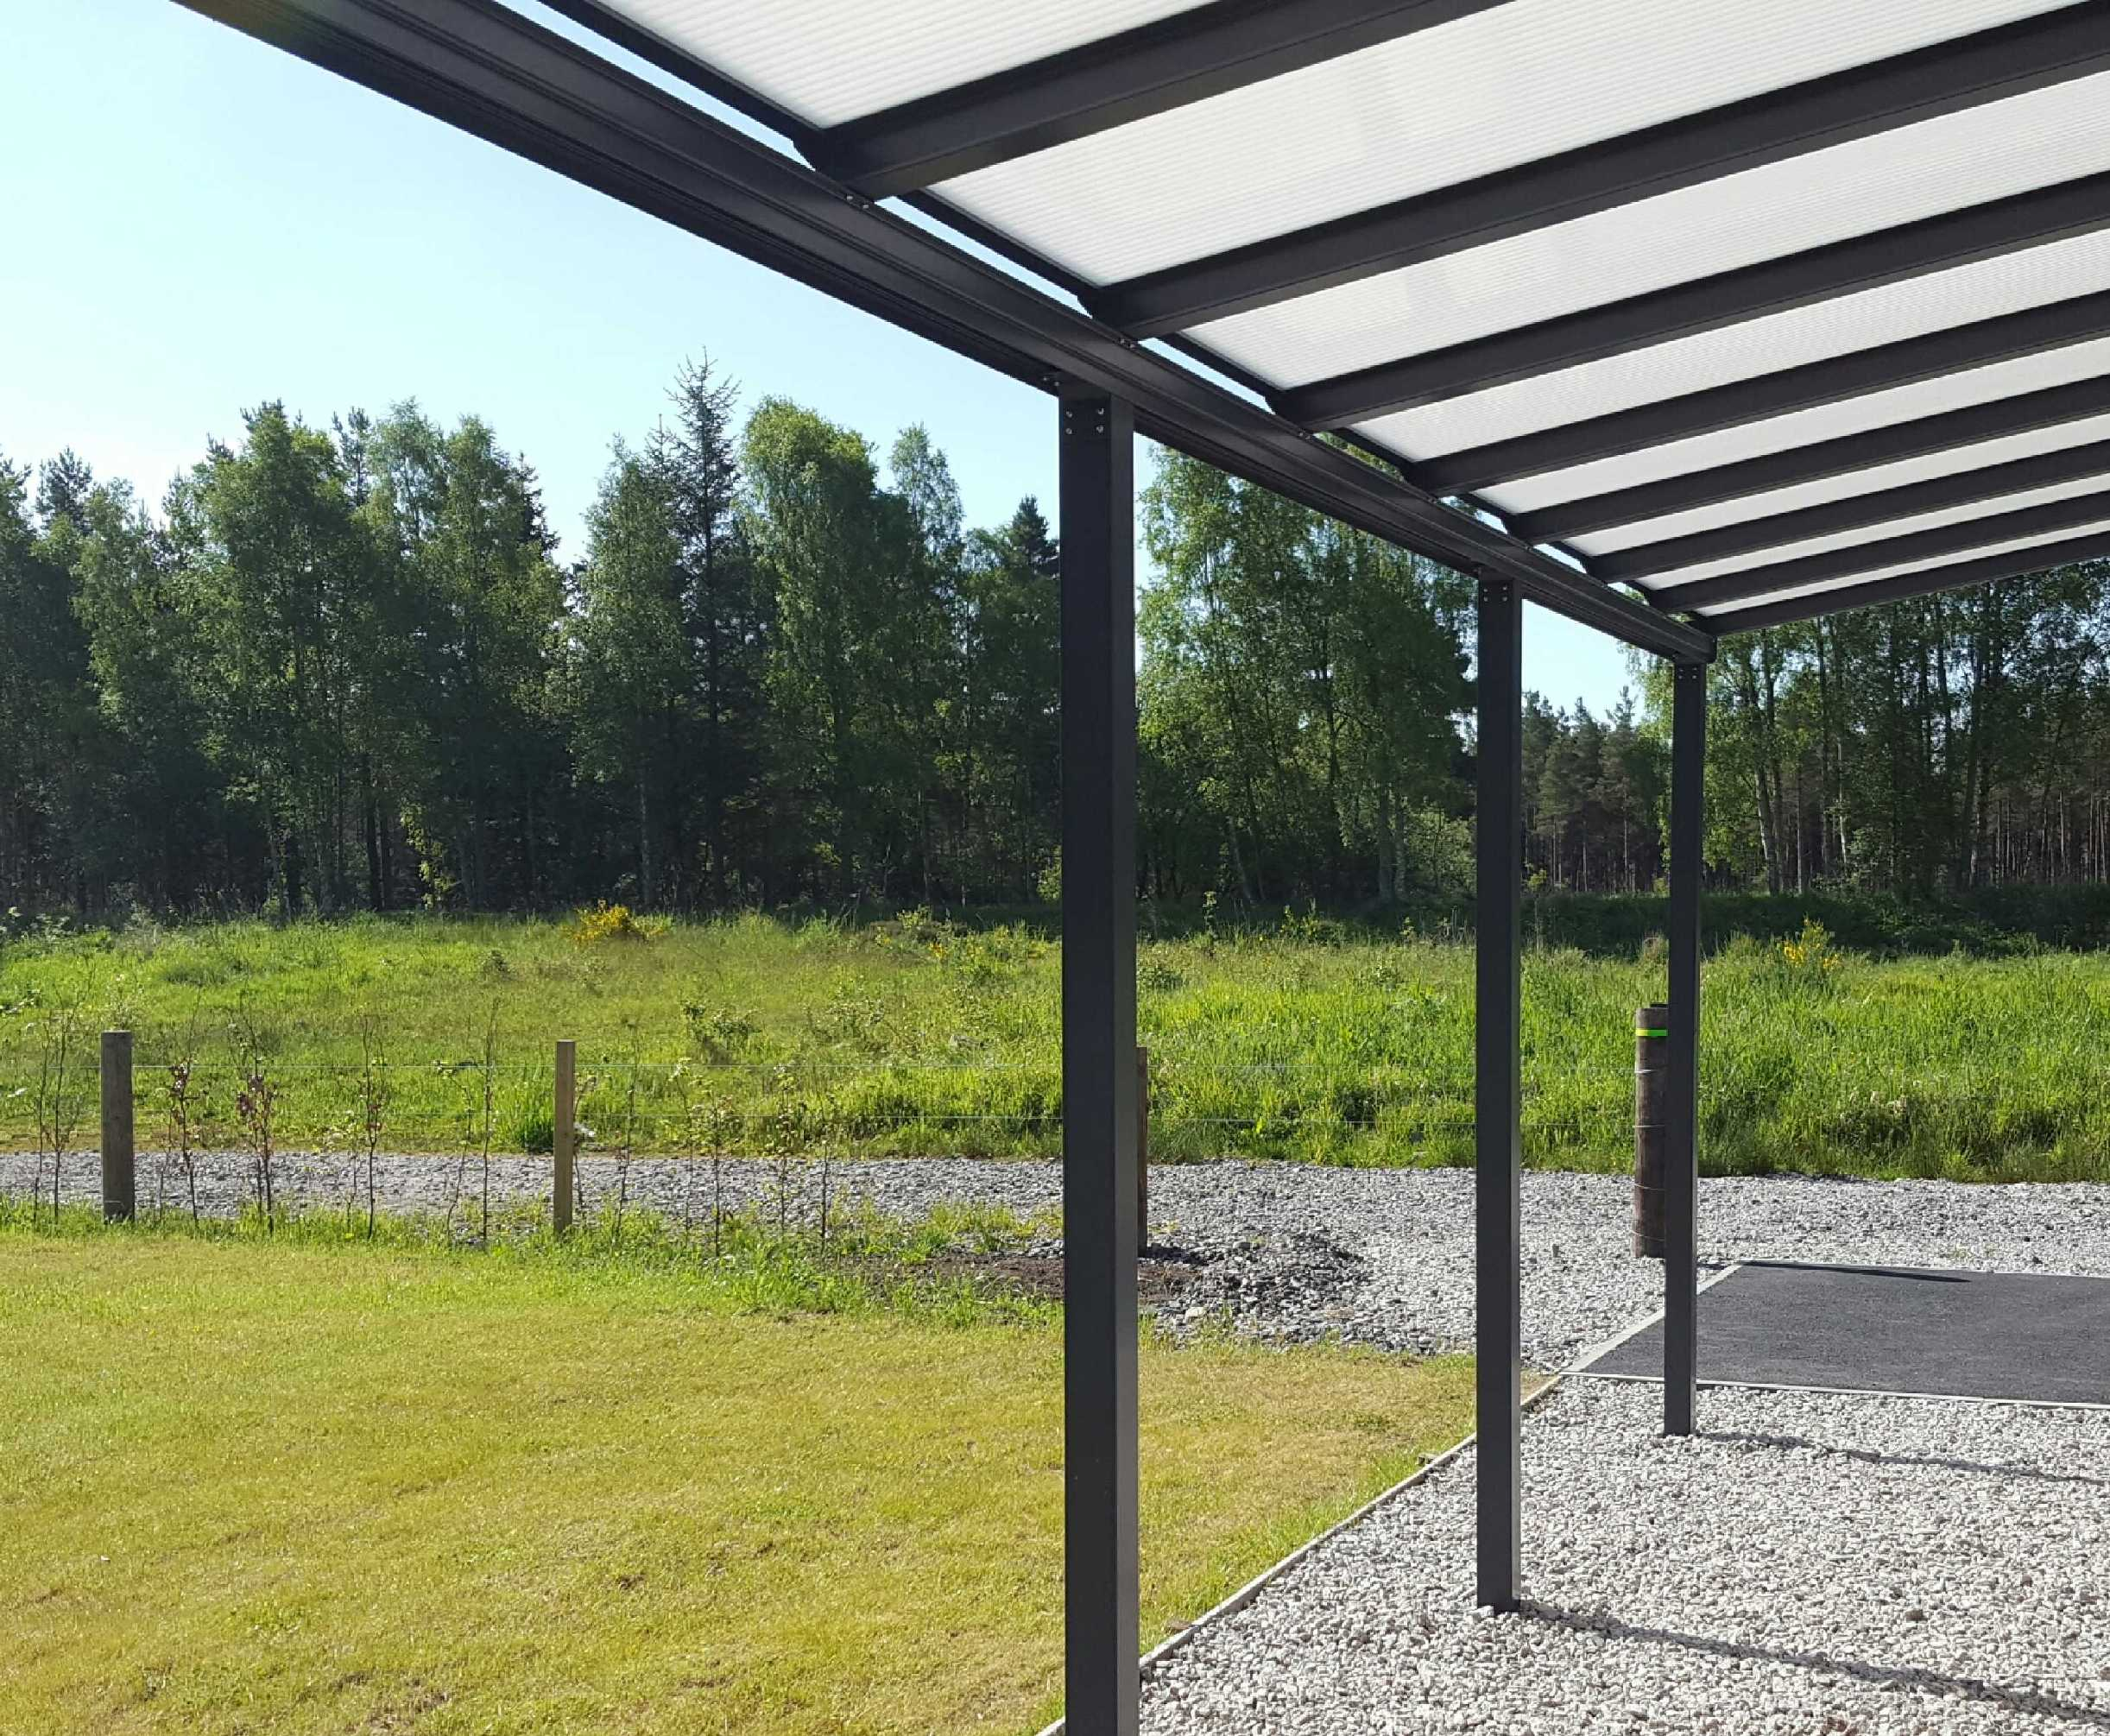 Omega Smart Lean-To Canopy, Anthracite Grey, 16mm Polycarbonate Glazing - 9.5m (W) x 1.5m (P), (5) Supporting Posts